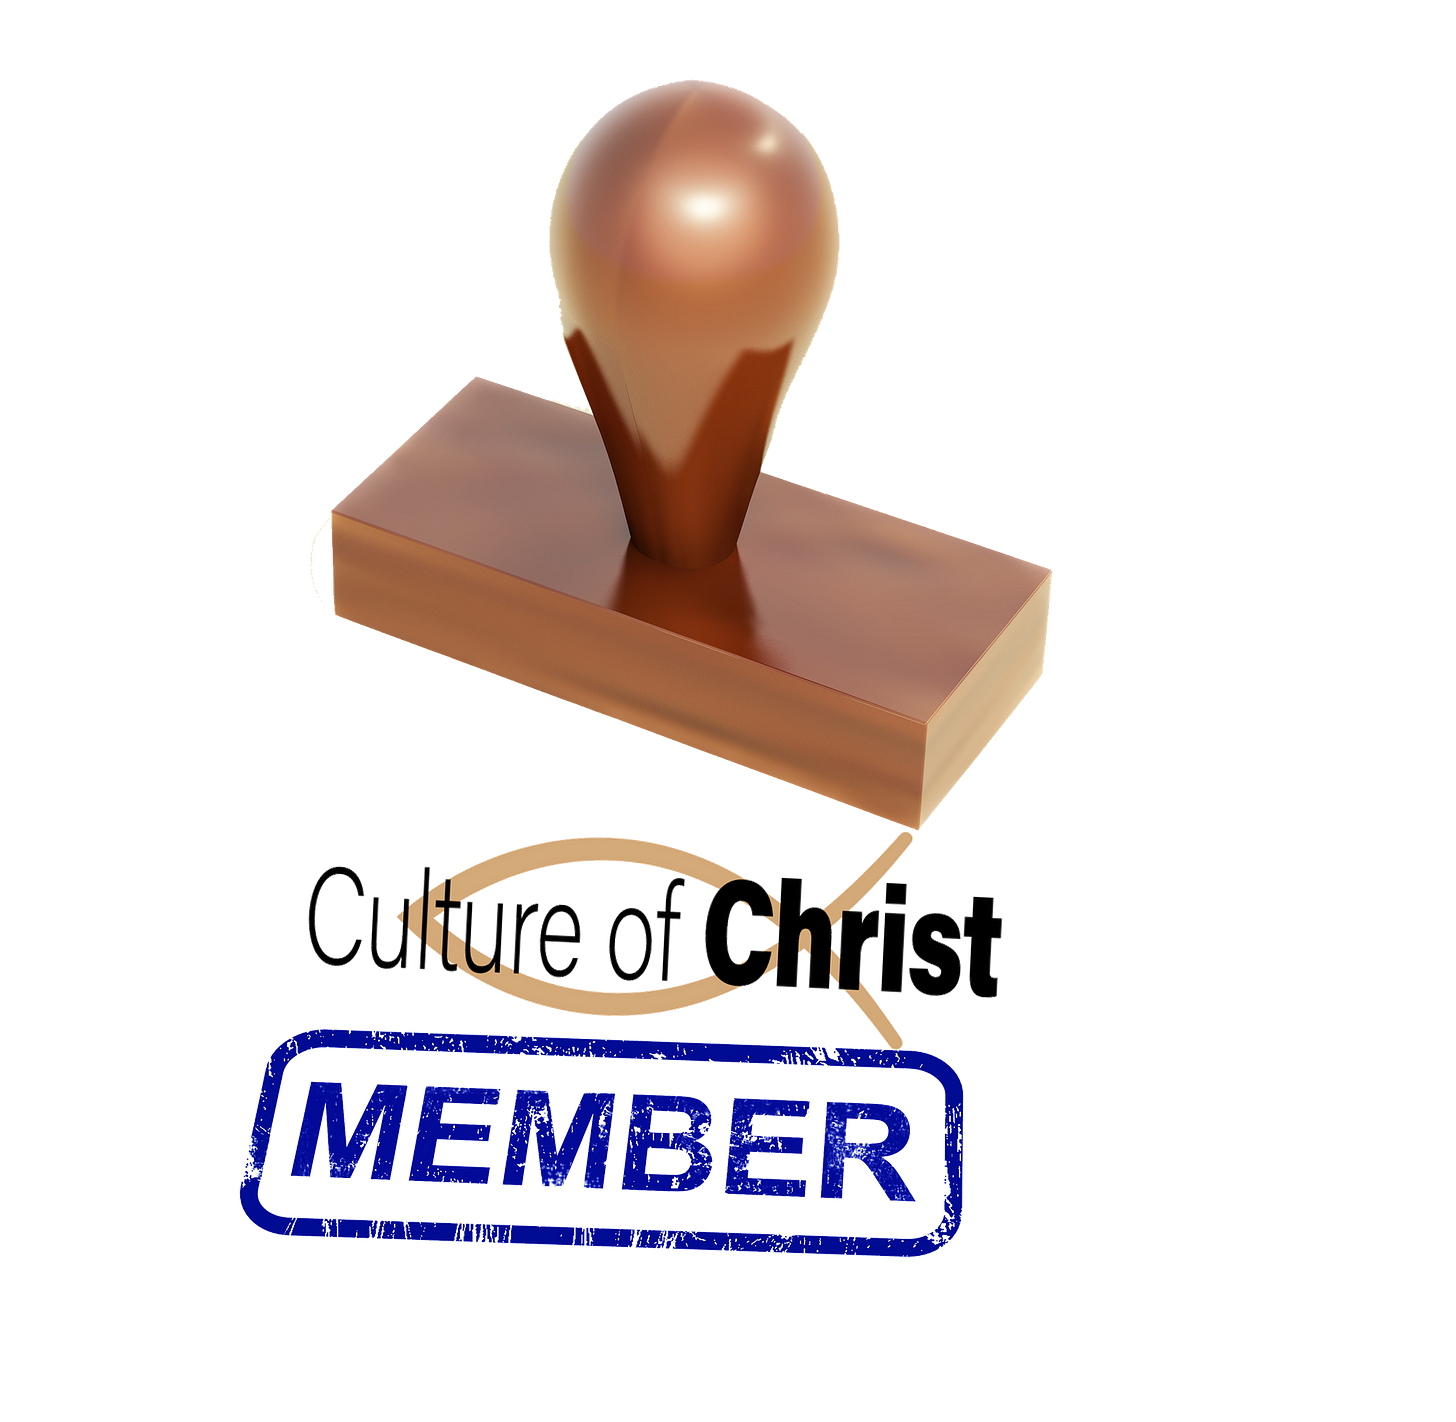 Why should I become a member?